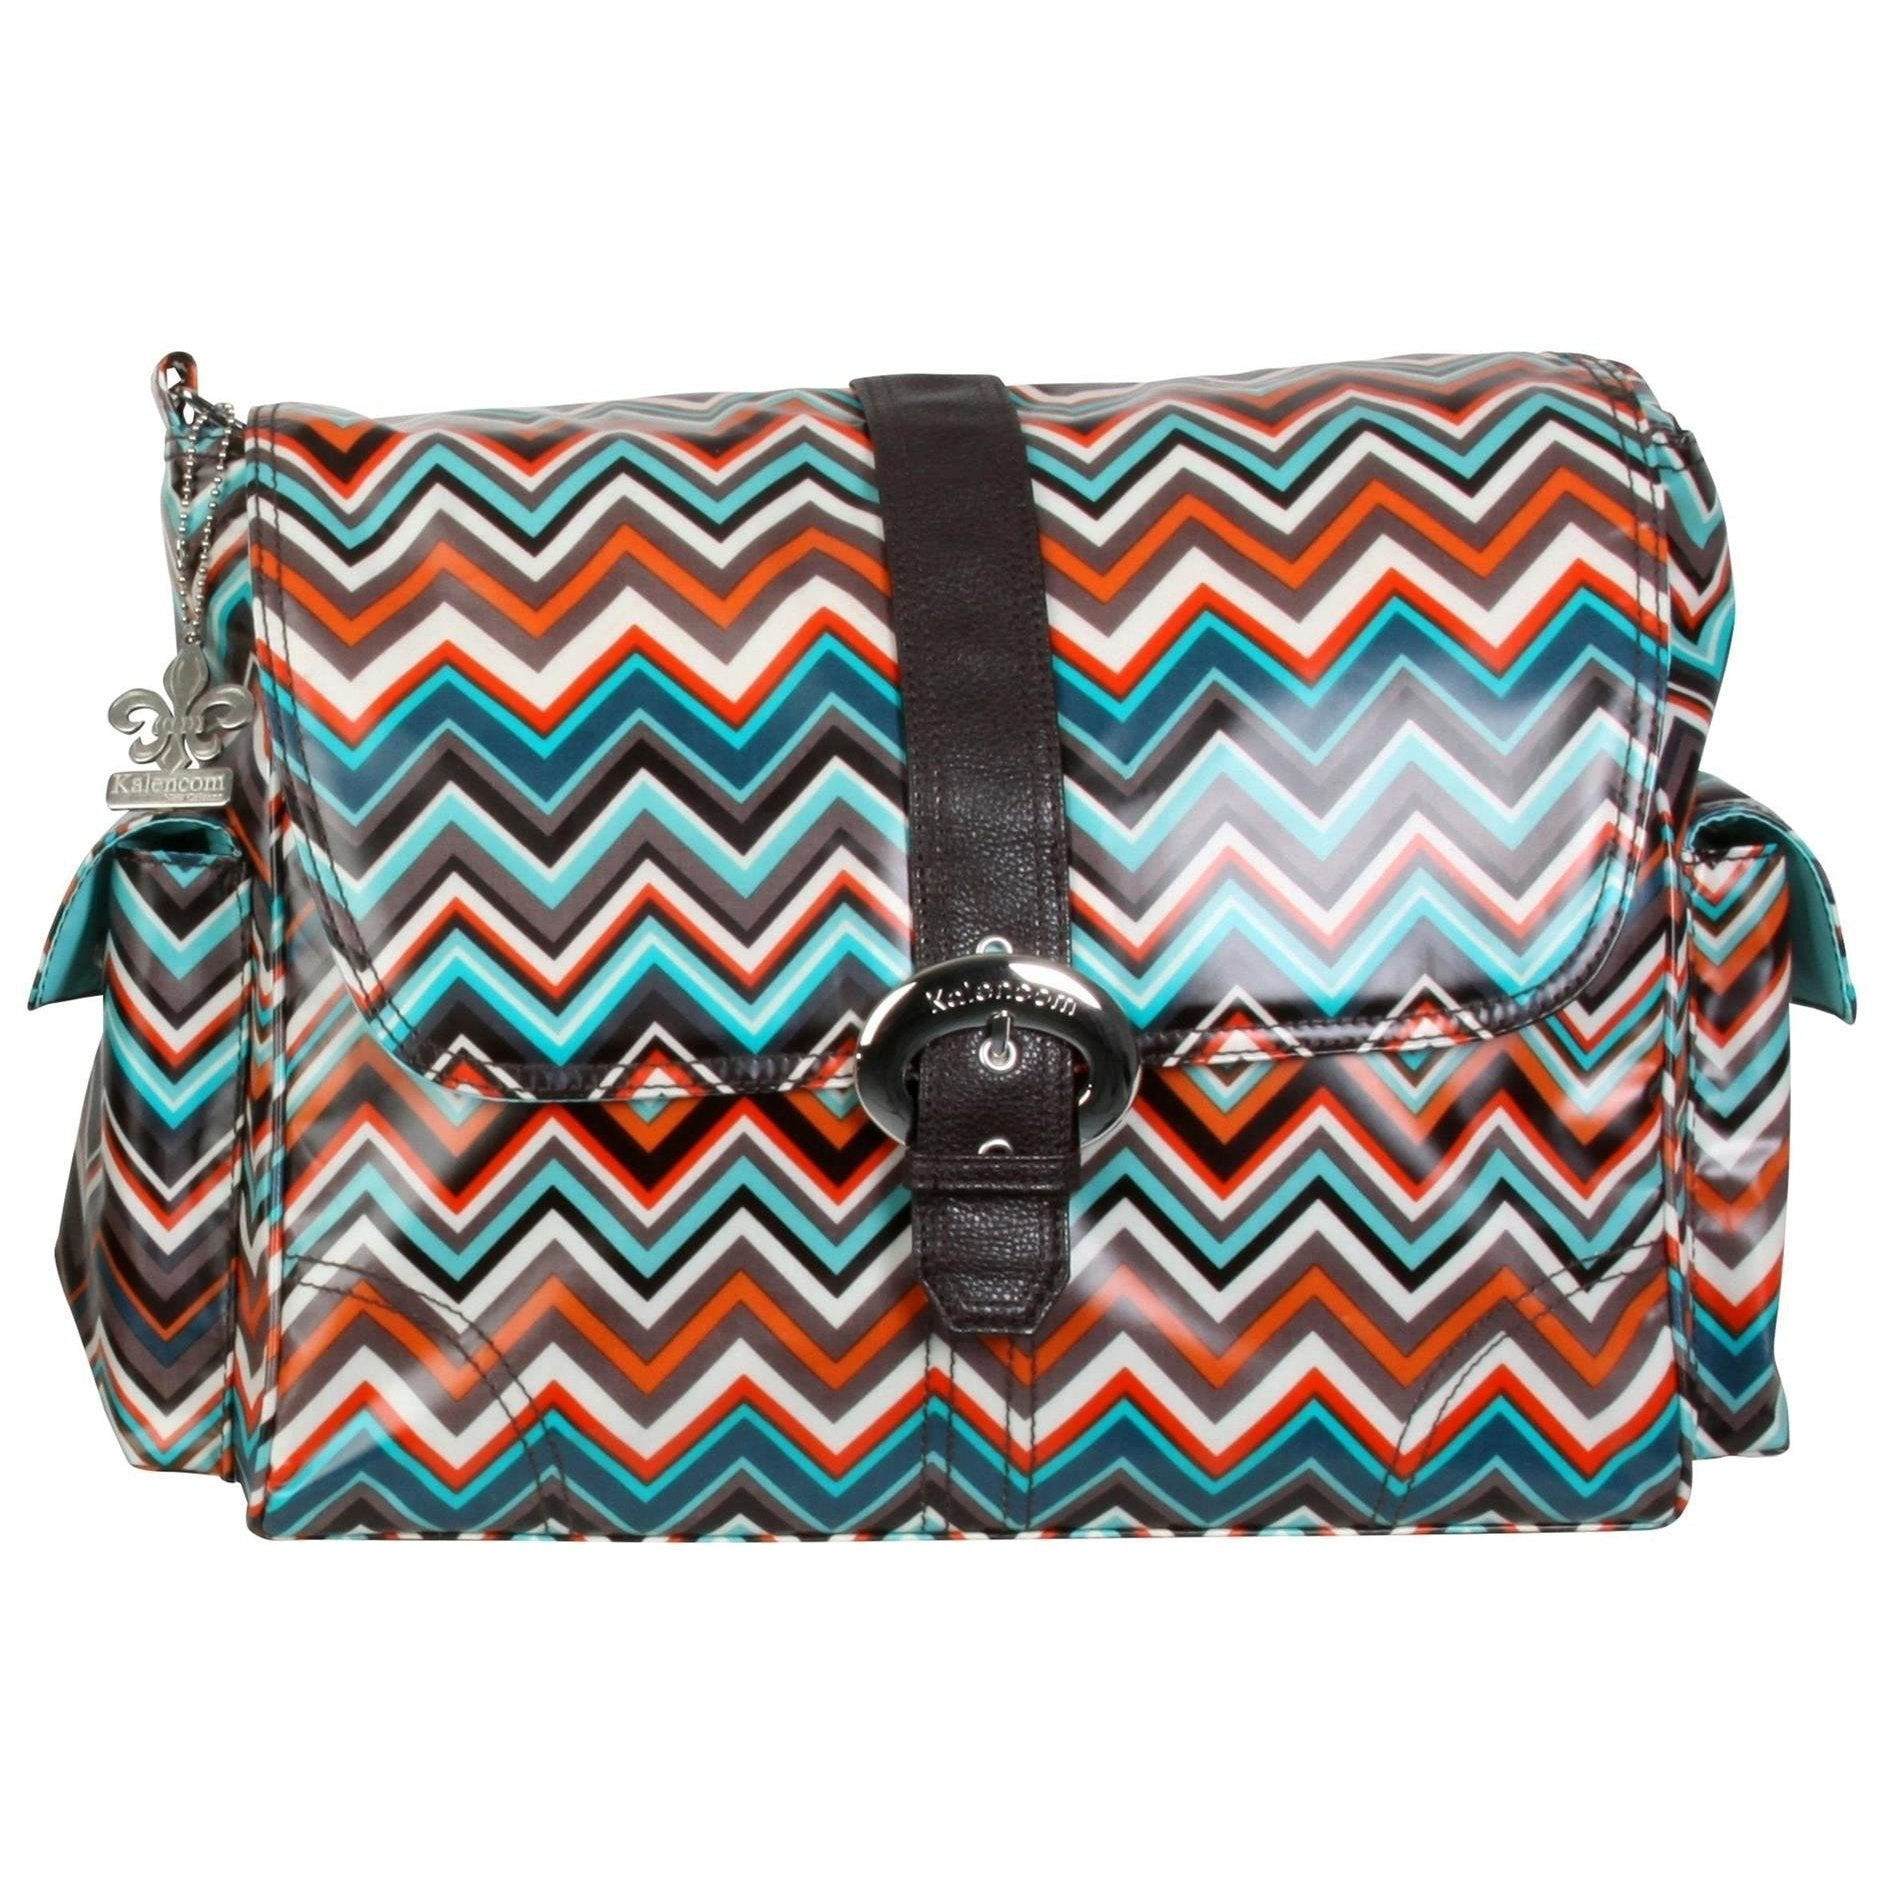 Safari Zigzag Matte Coated Buckle Diaper Bag | Style 2960 - Kalencom-Diaper Bags-Jack and Jill Boutique